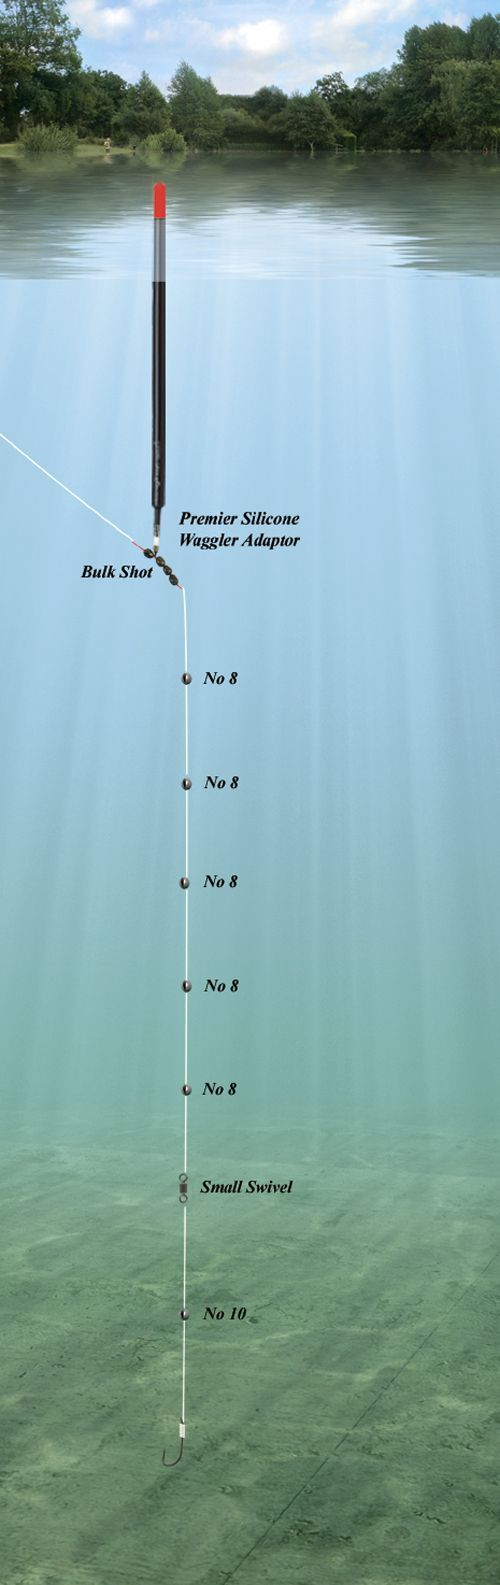 Peacock Waggler Shotting Diagram